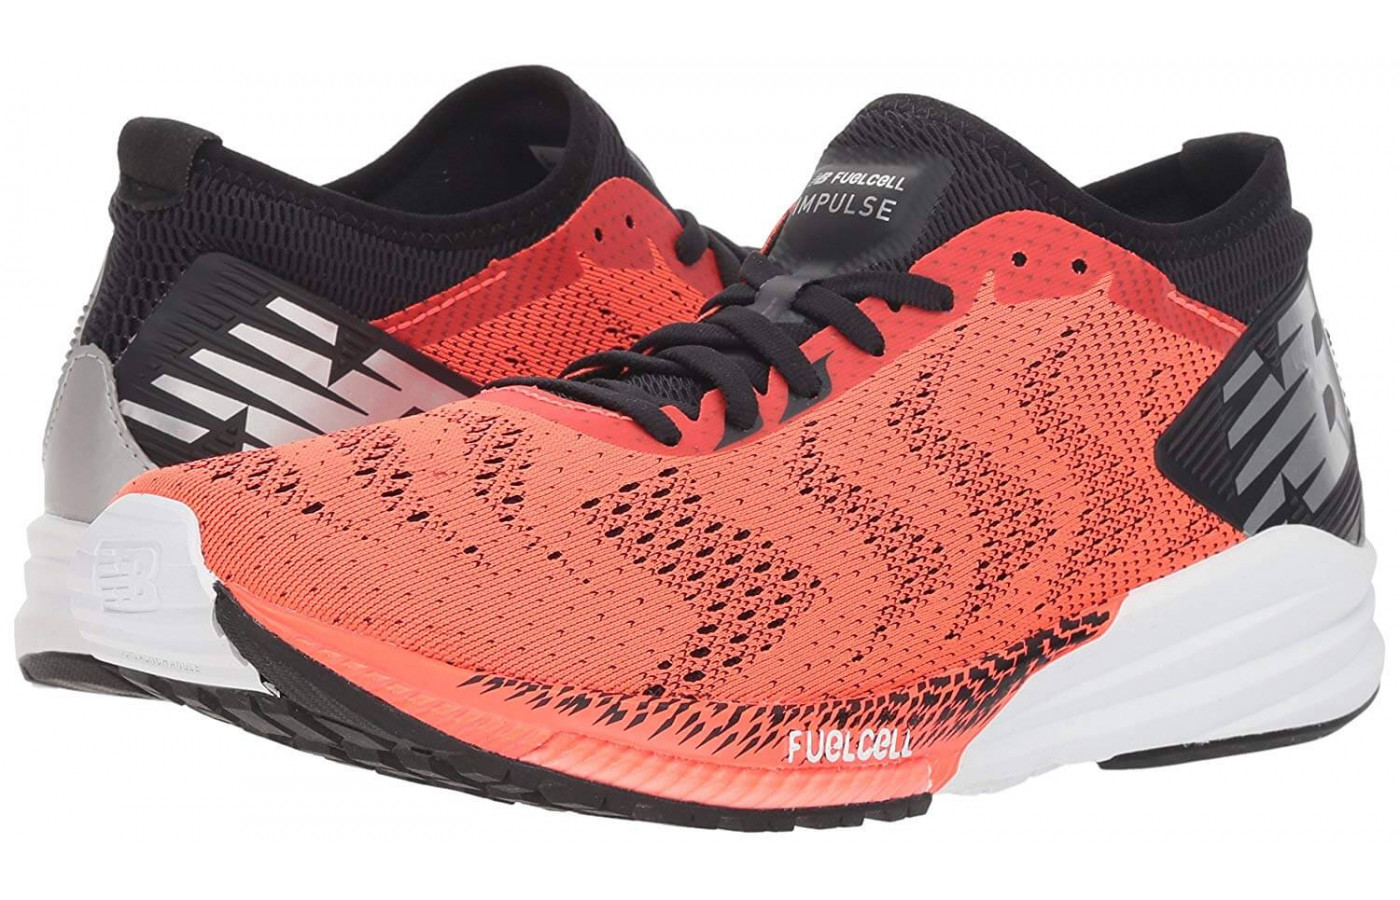 New Balance Fuelcell Impulse left right